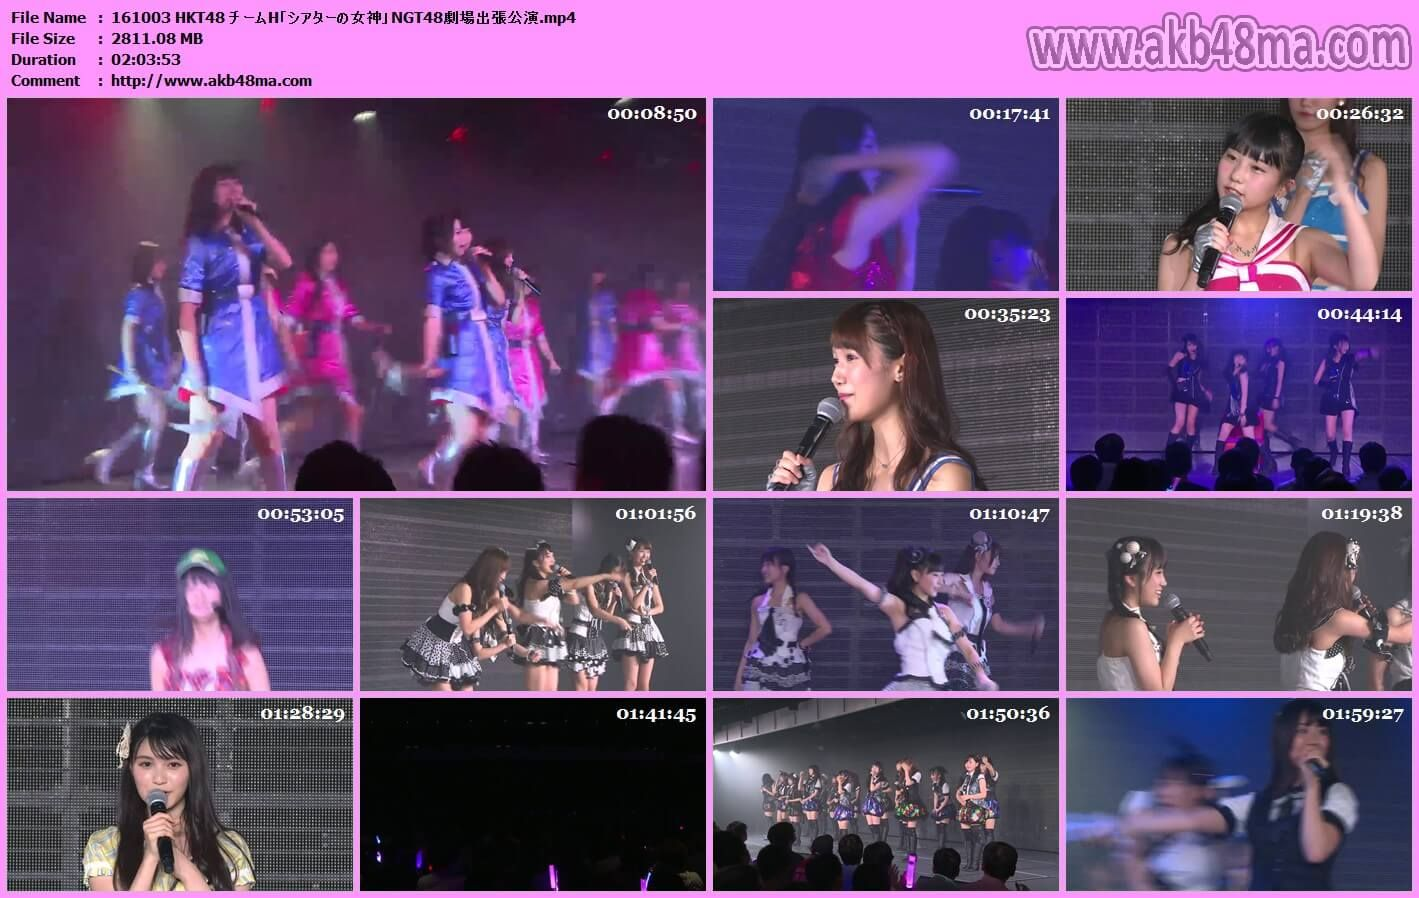 公演配信HKT48 チームHシアターの女神NGT48劇場出張公演   ALFAFILEHKT48a16100301.Live.part1.rarHKT48a16100301.Live.part2.rarHKT48a16100301.Live.part3.rar ALFAFILE Note : AKB48MA.com Please Update Bookmark our Pemanent Site of AKB劇場 ! Thanks. HOW TO APPRECIATE ? ほんの少し笑顔 ! If You Like Then Share Us on Facebook Google Plus Twitter ! Recomended for High Speed Download Buy a Premium Through Our Links ! Keep Support How To Support ! Again Thanks For Visiting . Have a Nice DAY ! i Just Say To You 人生を楽しみます !  2016 720P 公演…